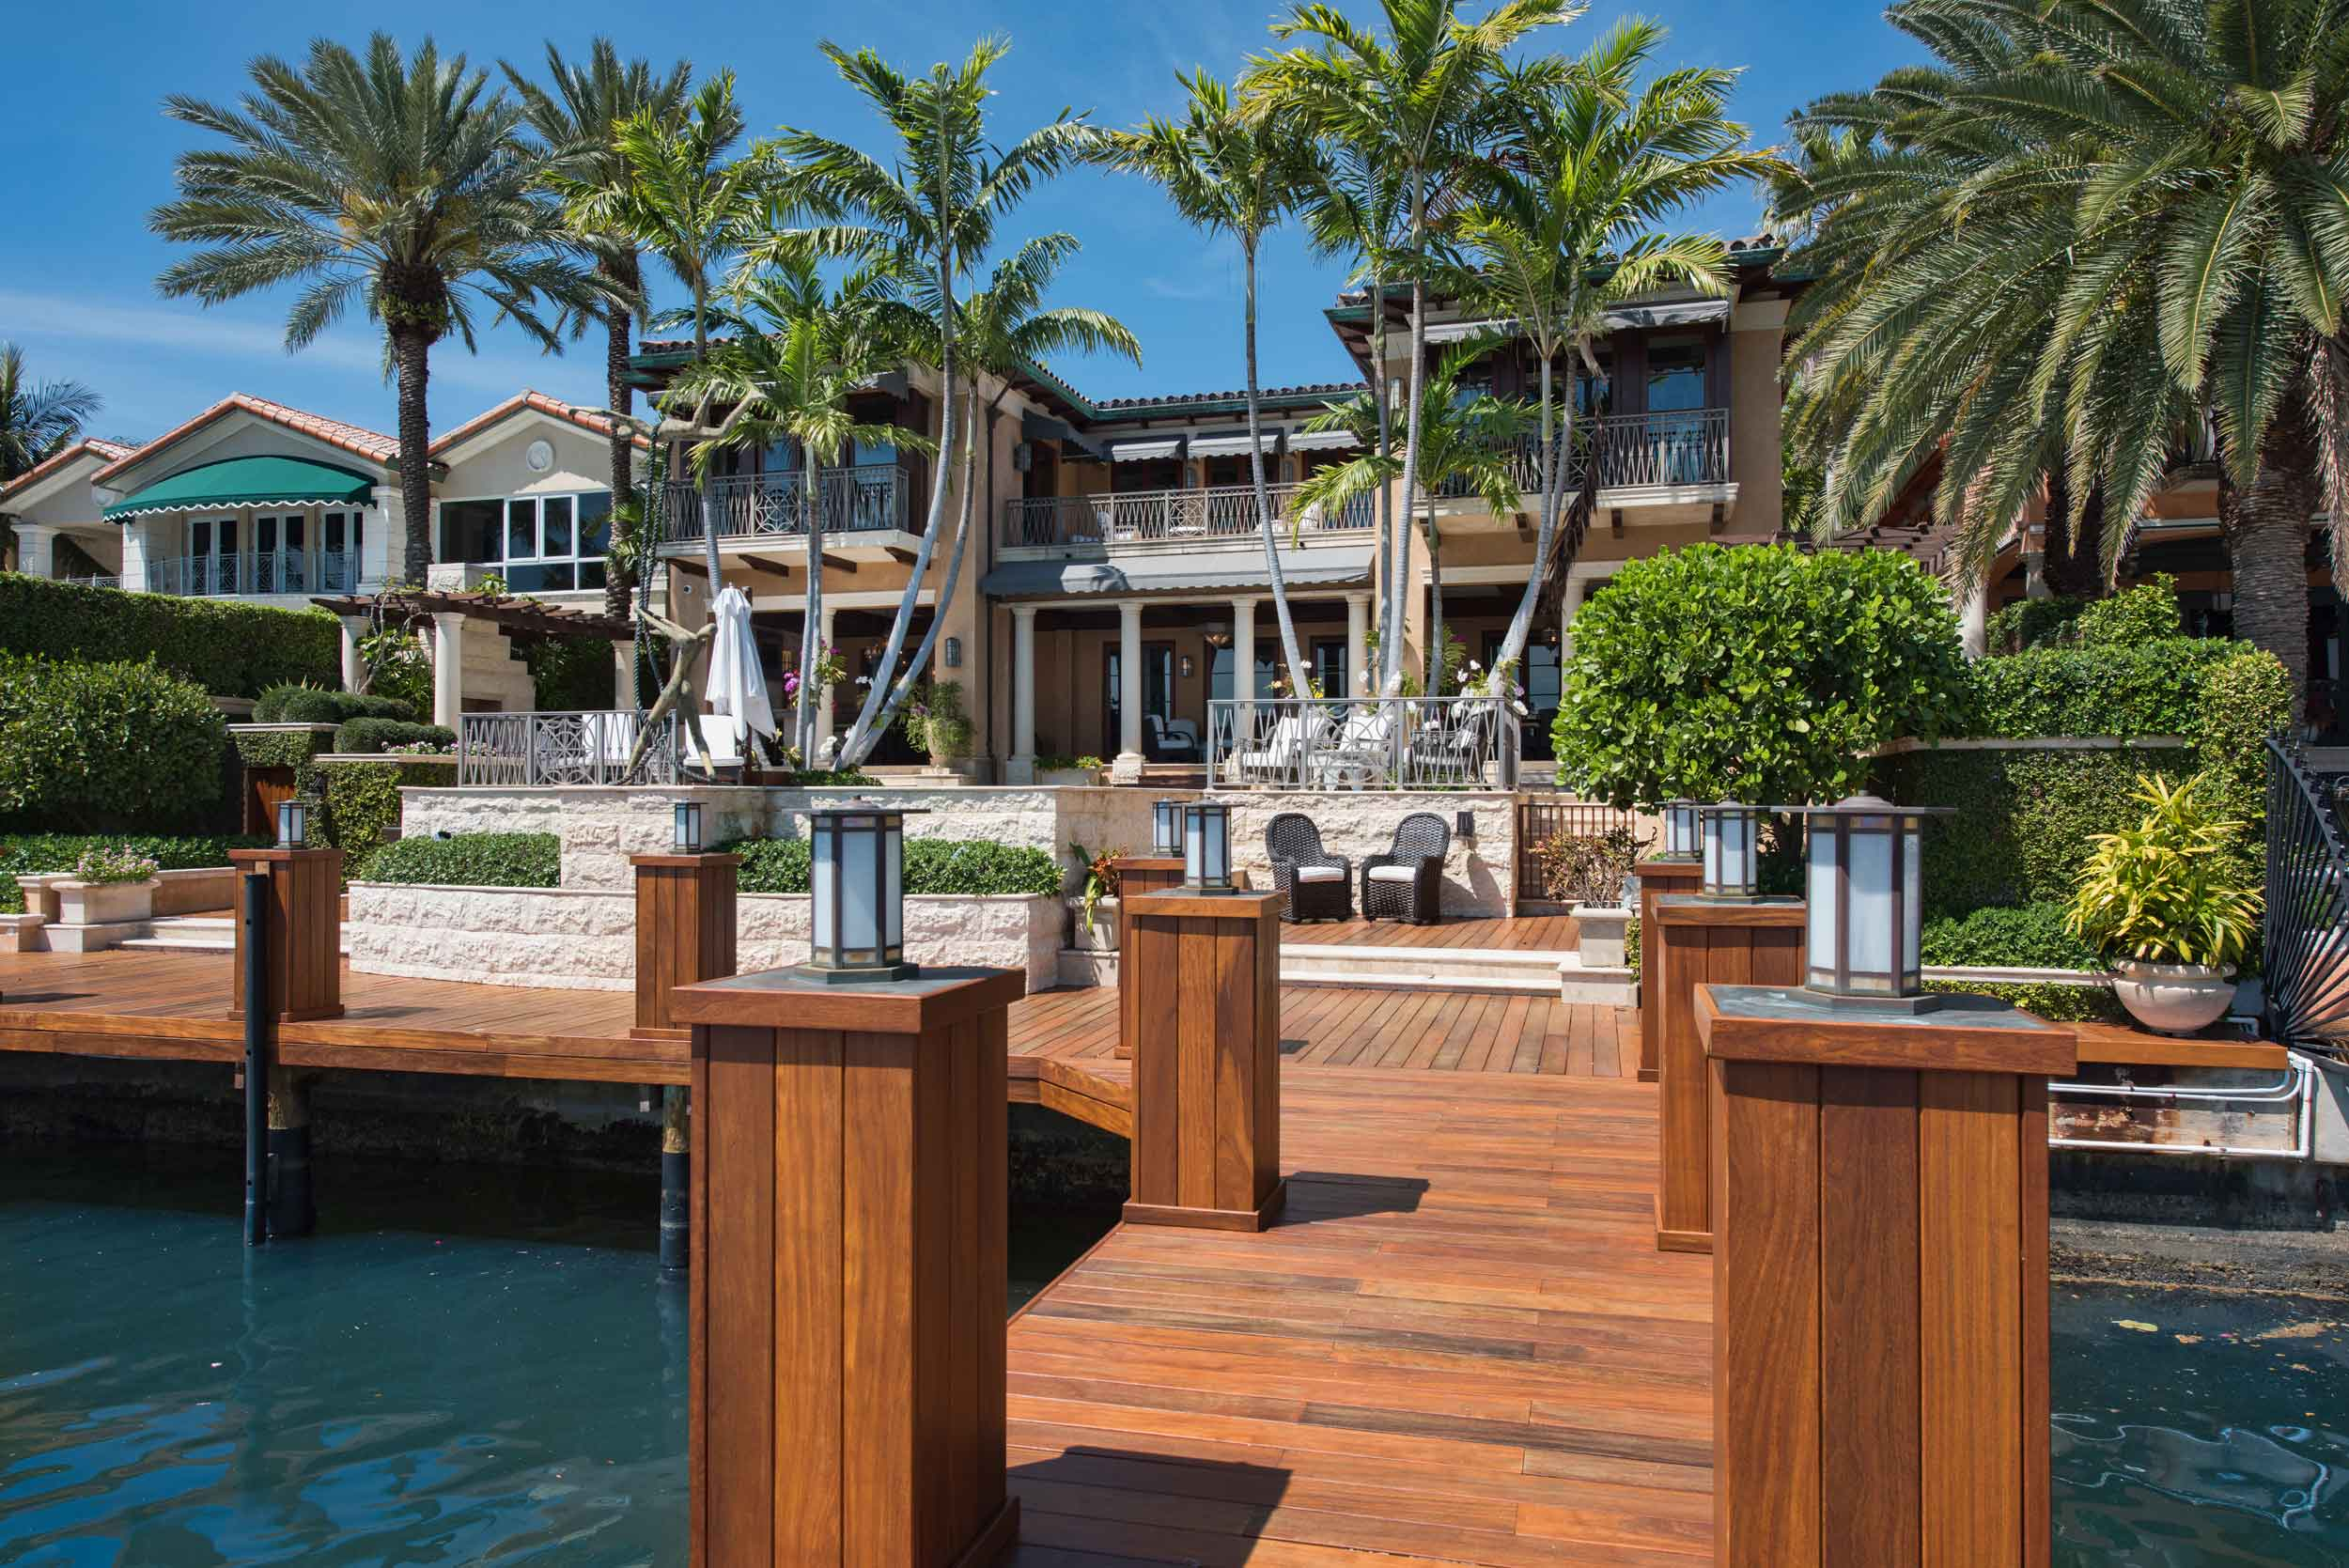 Bay House is a grand Palladian-style estate with an exquisite pool terrace and a private dock on Biscayne Bay.